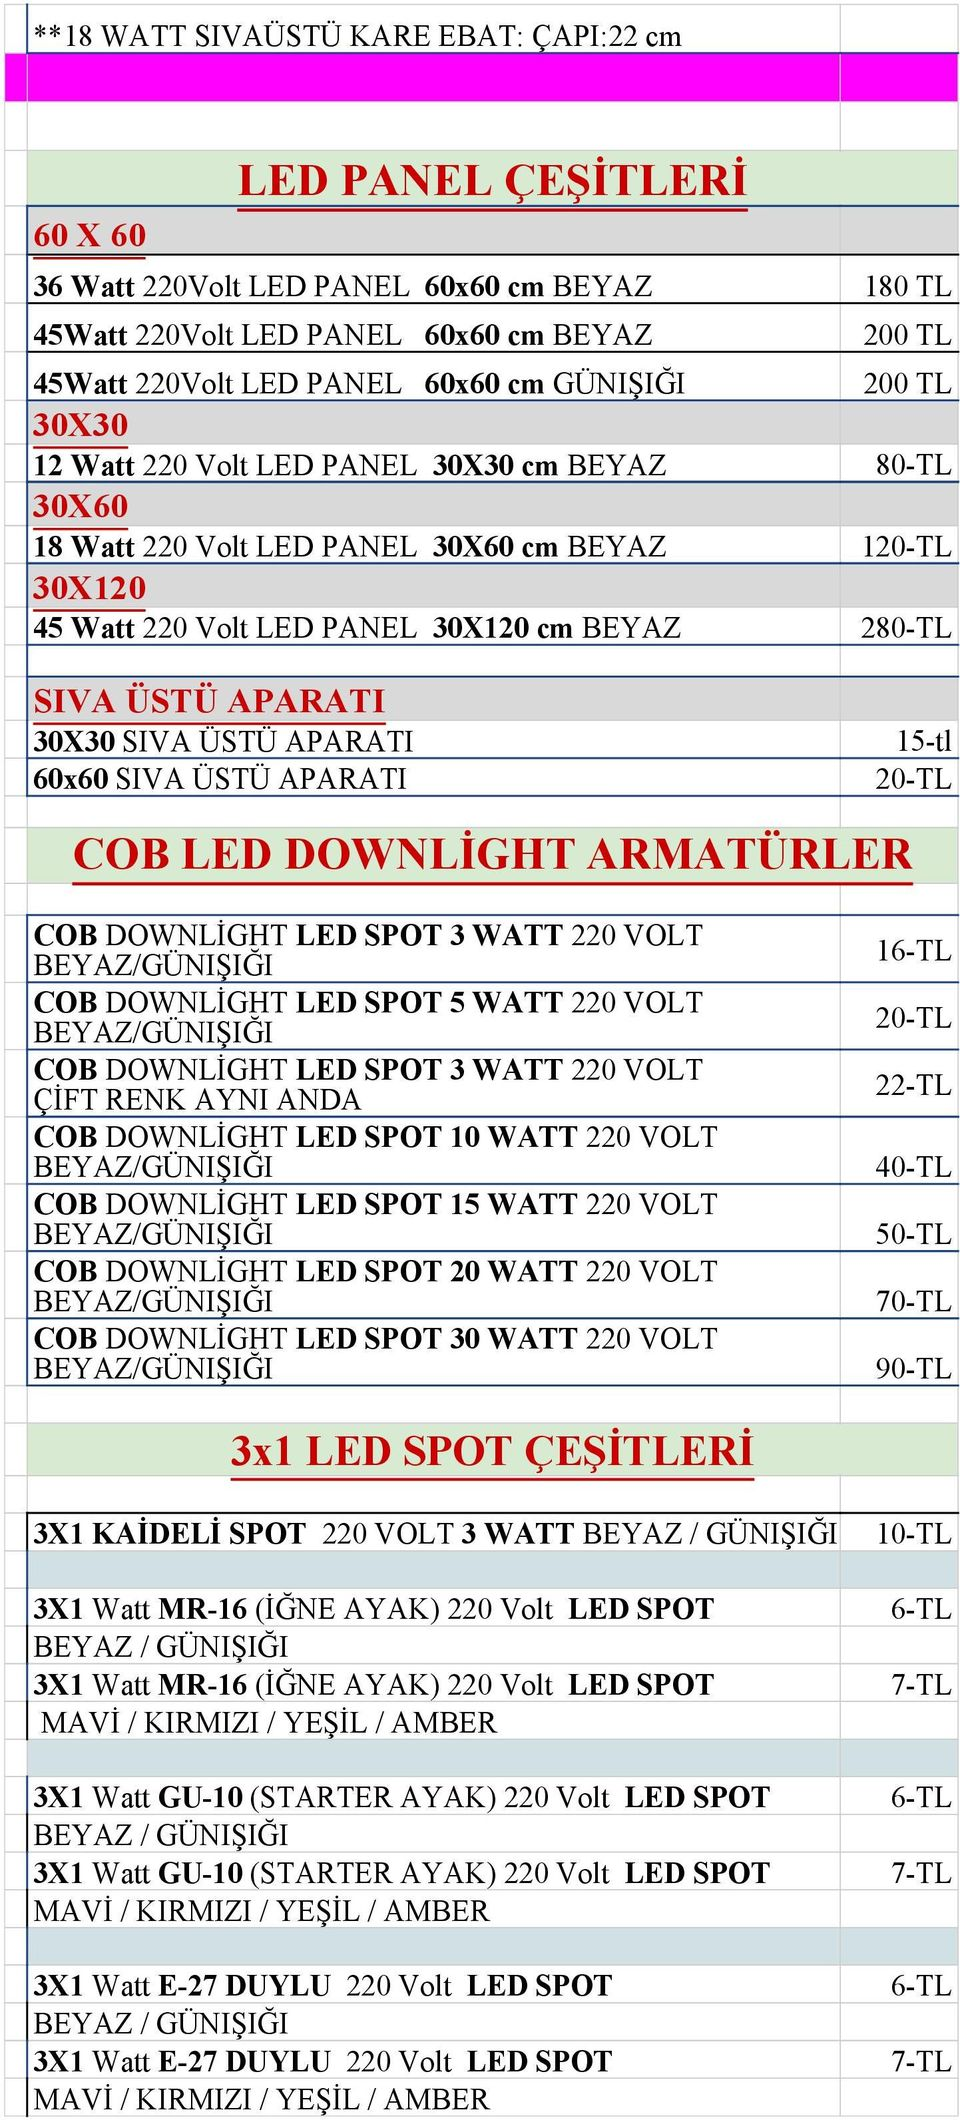 30X30 SIVA ÜSTÜ APARATI 60x60 SIVA ÜSTÜ APARATI 15-tl 20-TL COB LED DOWNLİGHT ARMATÜRLER COB DOWNLİGHT LED SPOT 3 WATT 220 VOLT COB DOWNLİGHT LED SPOT 5 WATT 220 VOLT COB DOWNLİGHT LED SPOT 3 WATT